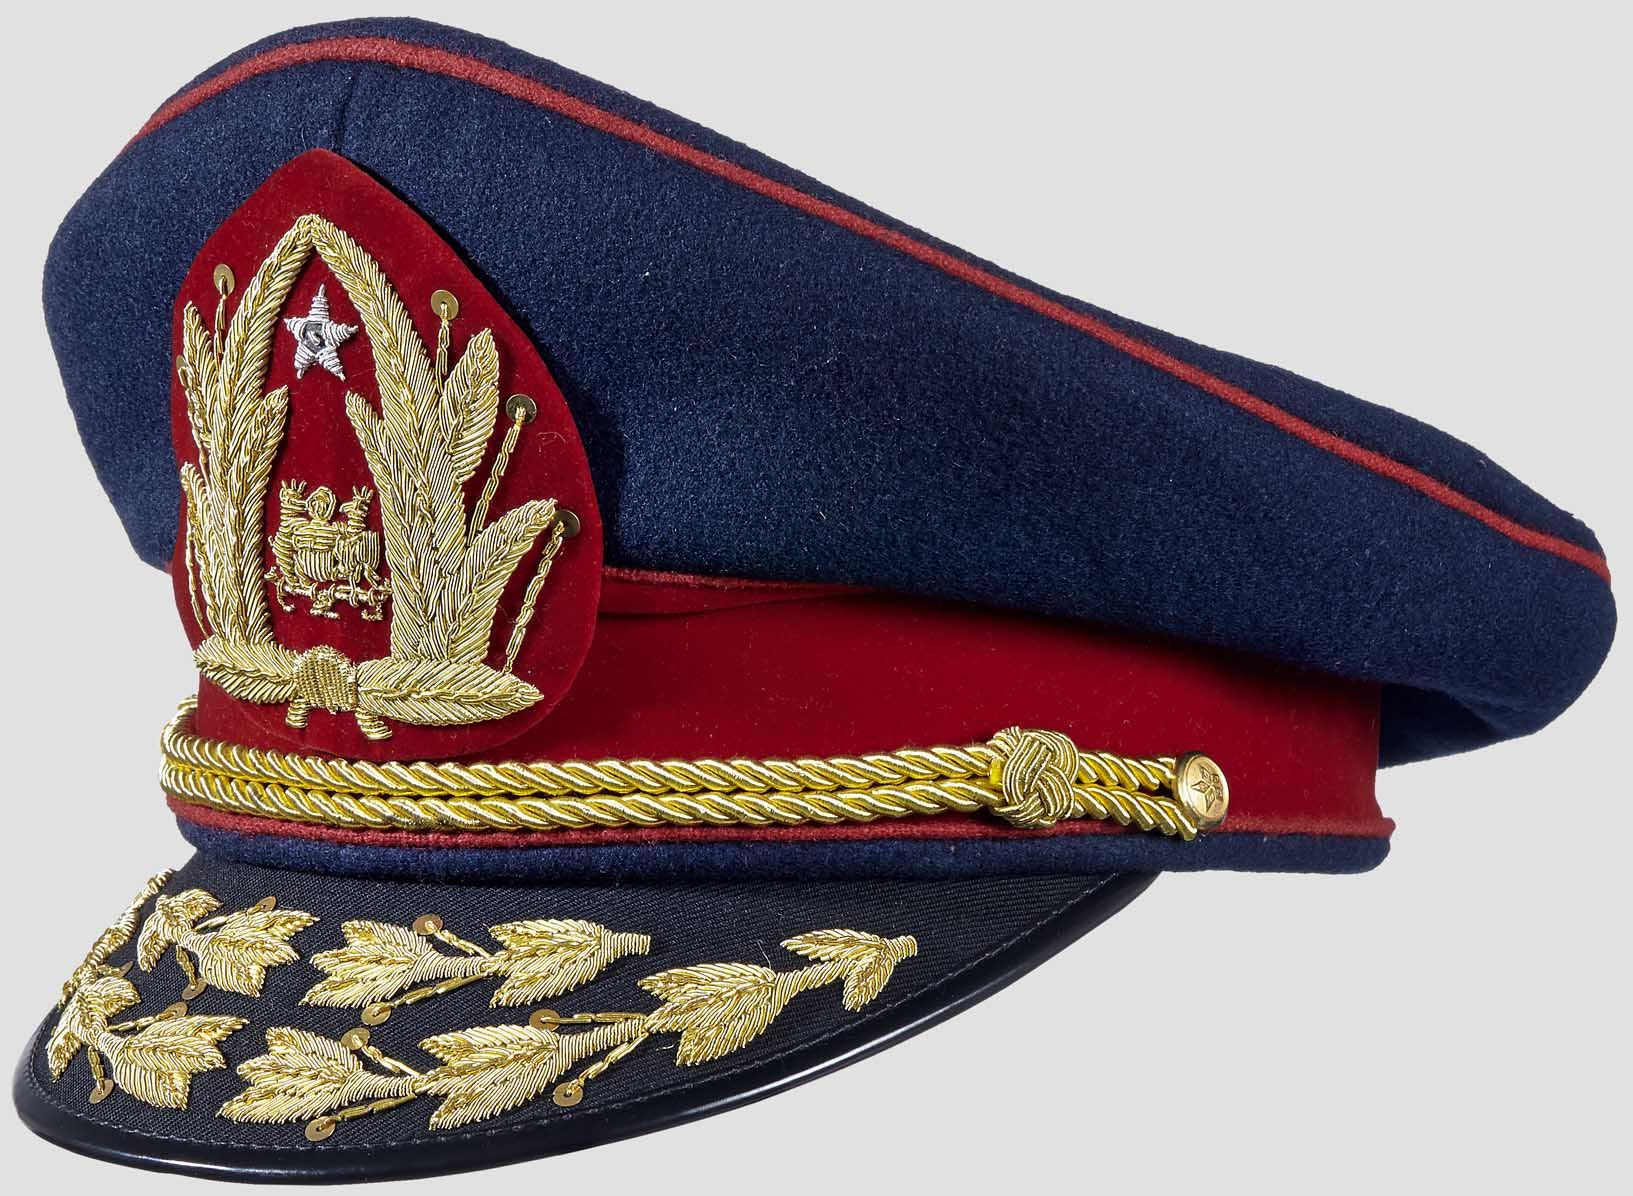 62bdbaa55aa Gorra de etiqueta del comandante en jefe del Ejército de Chile   Chilean  Army commander-in-chief s blue dress uniform visor cap.